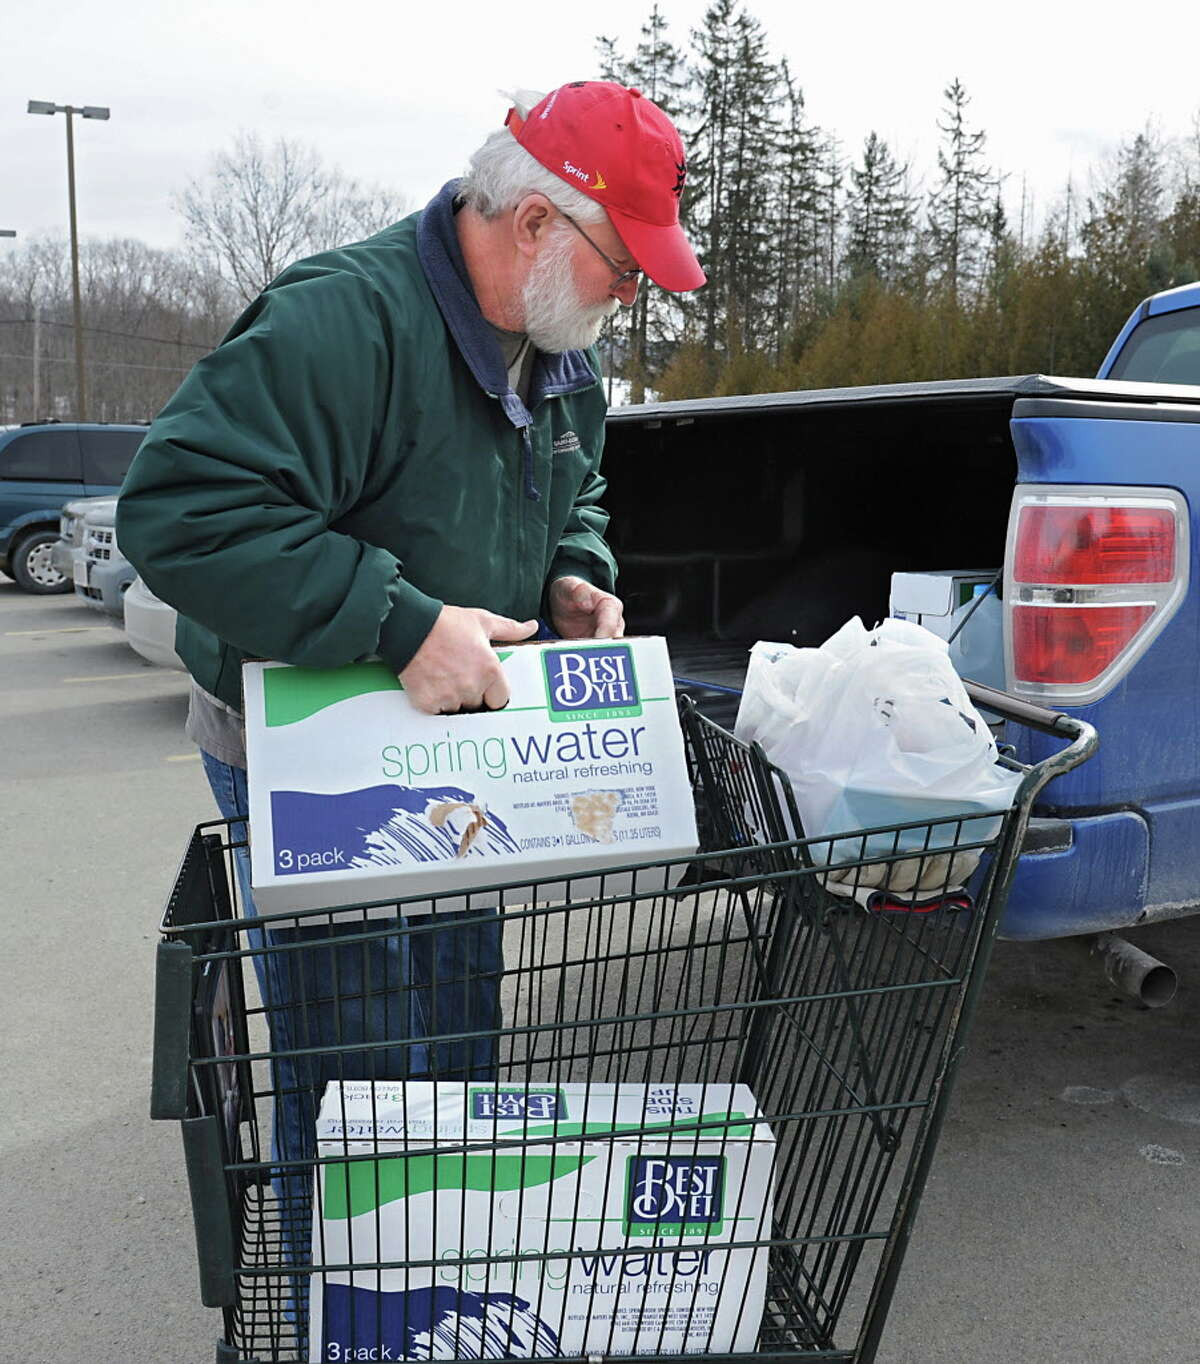 Mike McGuire of Hoosick Falls loads spring water, bought at Tops grocery store, into the back of his pickup truck on Friday, Feb. 12, 2016 in Hoosick Falls, N.Y. (Lori Van Buren / Times Union)